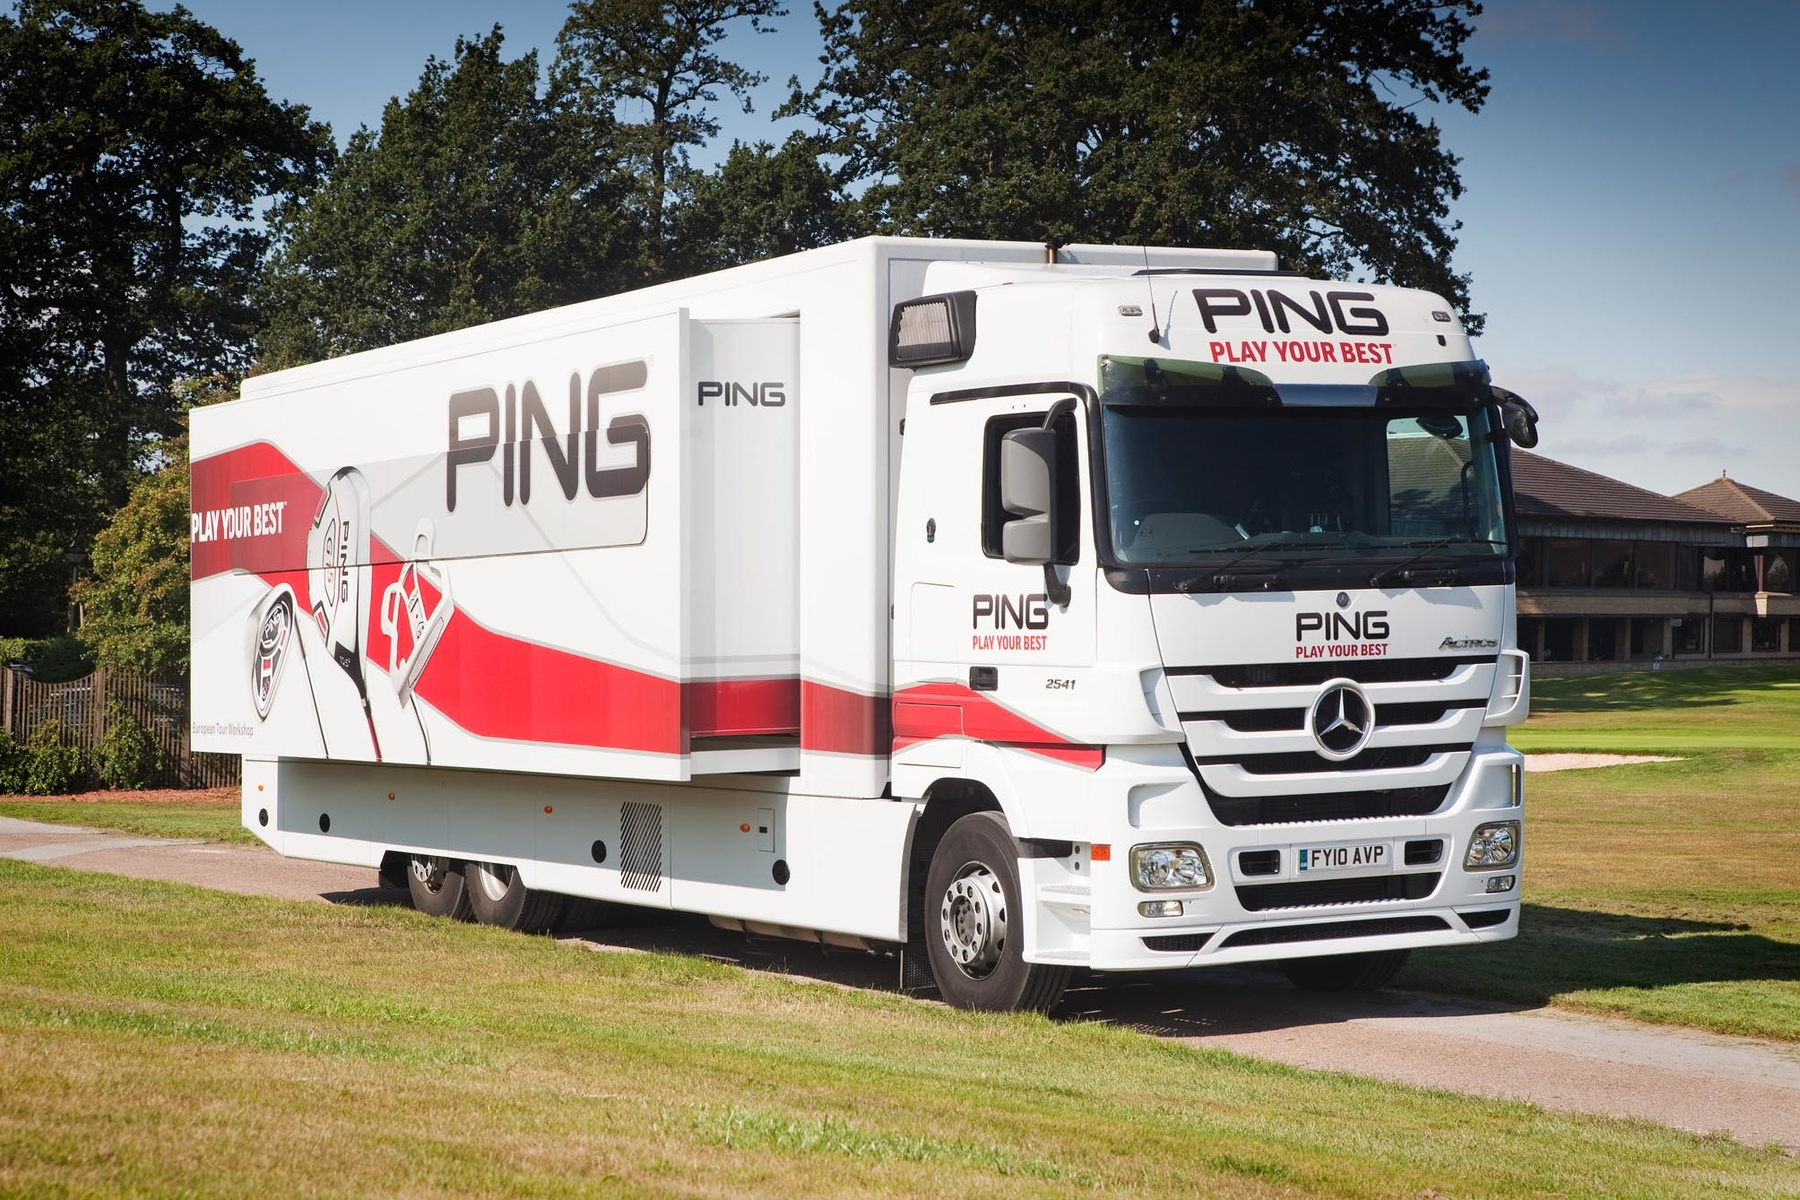 ping images for impact press and pr